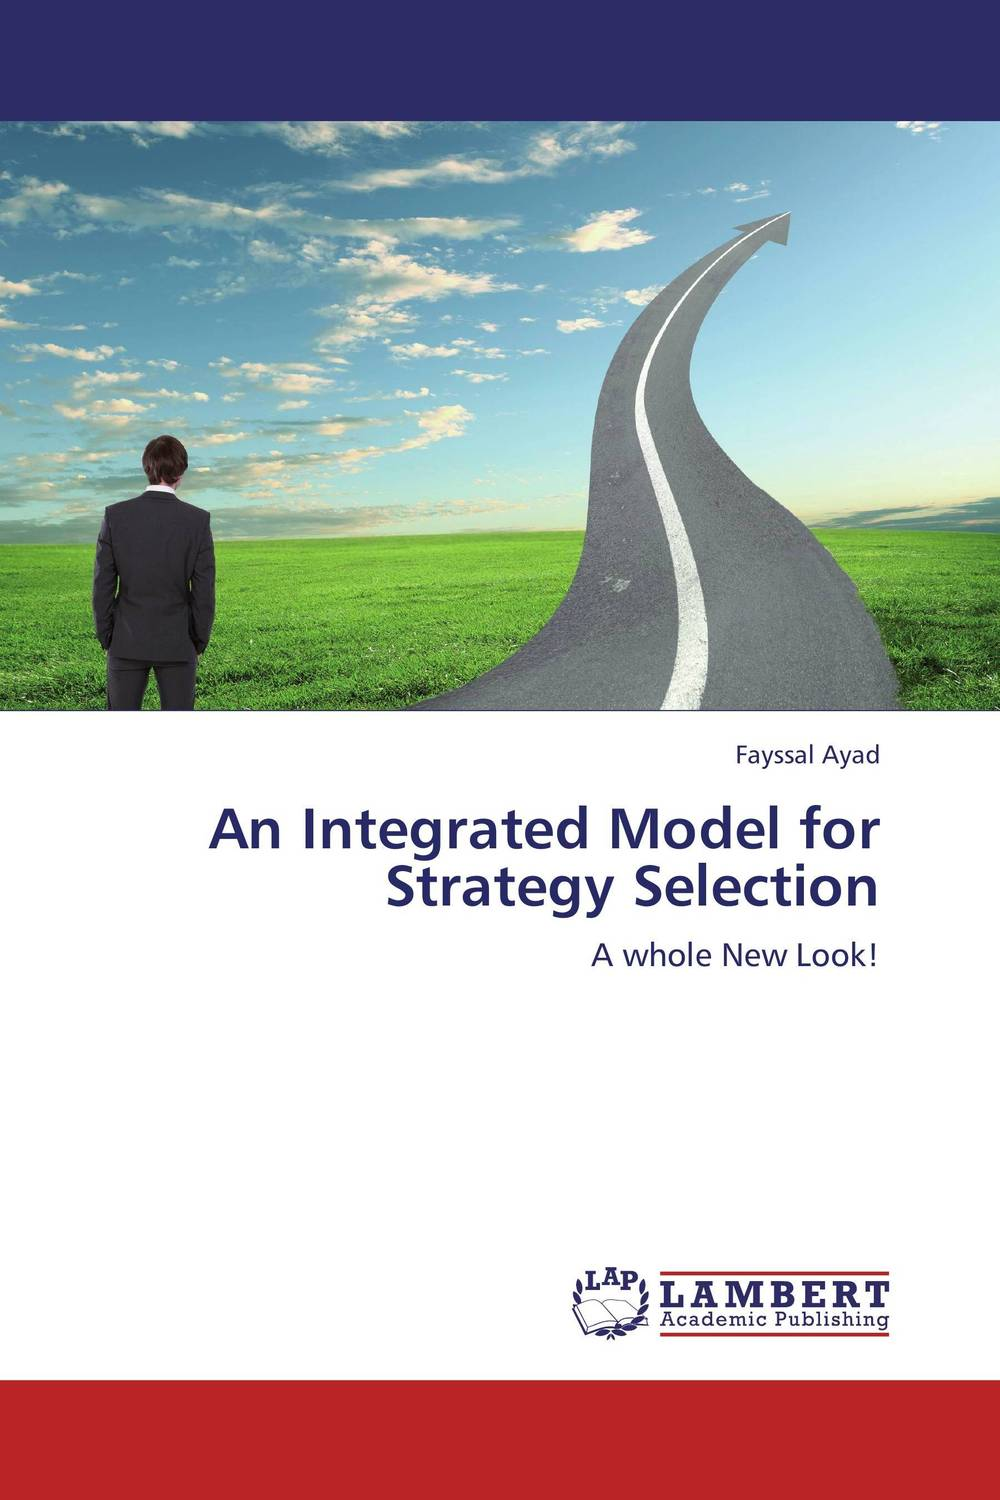 An Integrated Model for Strategy Selection